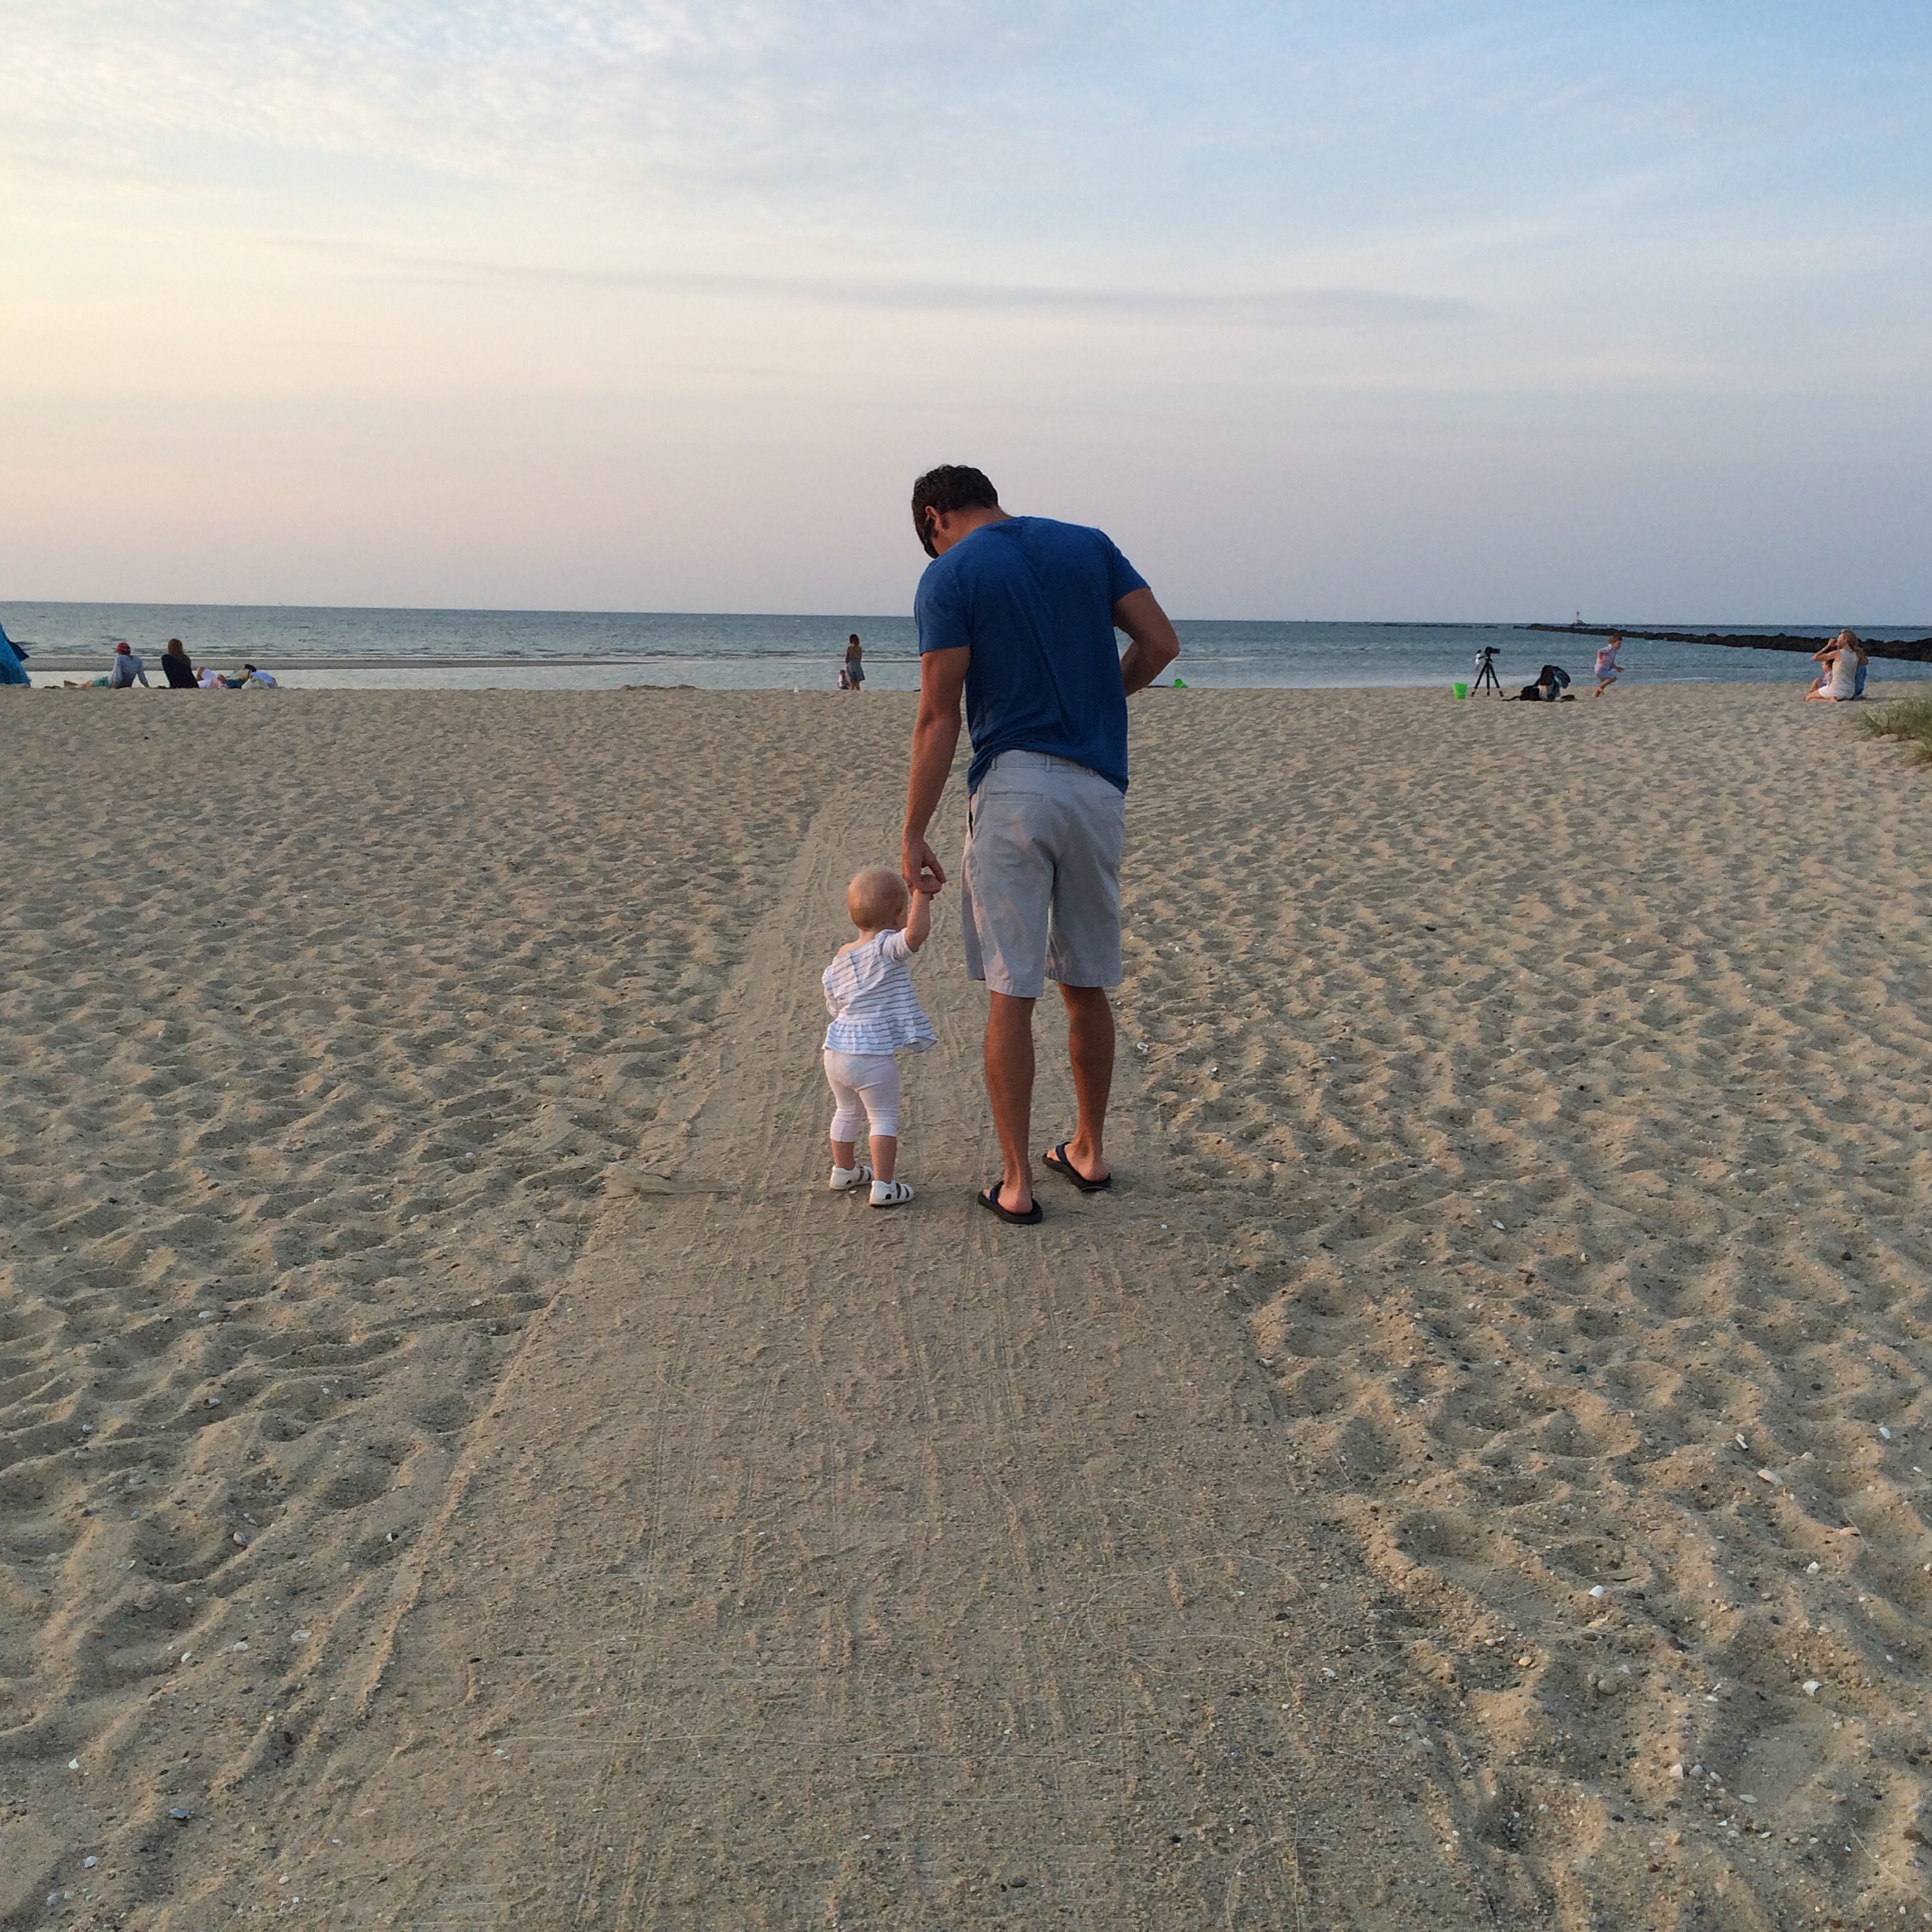 Savoring every moment together during dad's visit